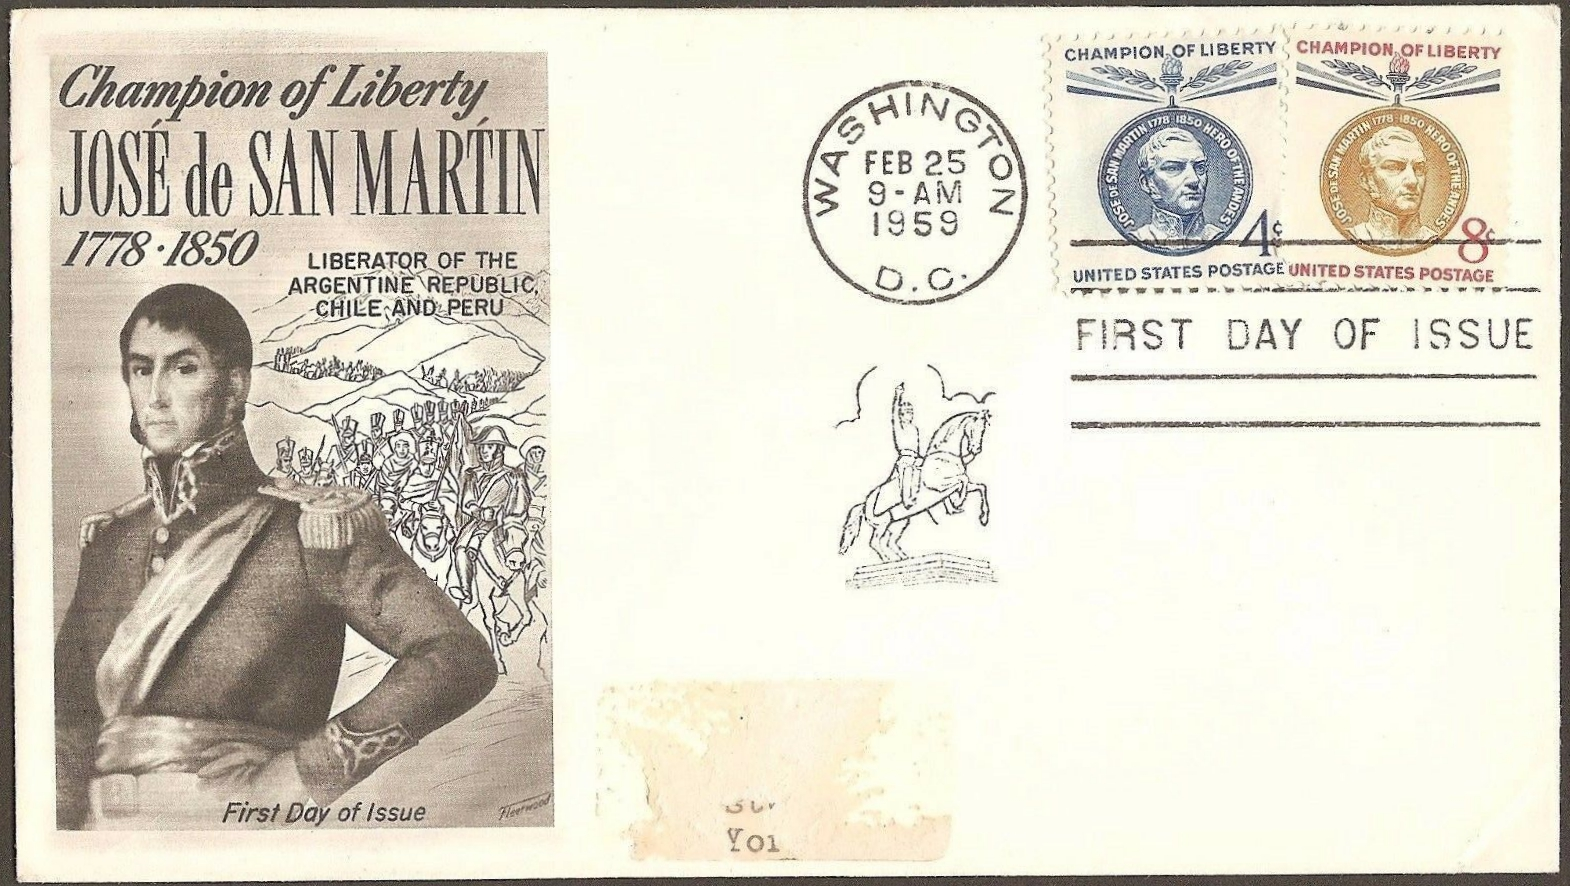 United States - Scott #1125-1126 (1959) first day cover and ceremony program